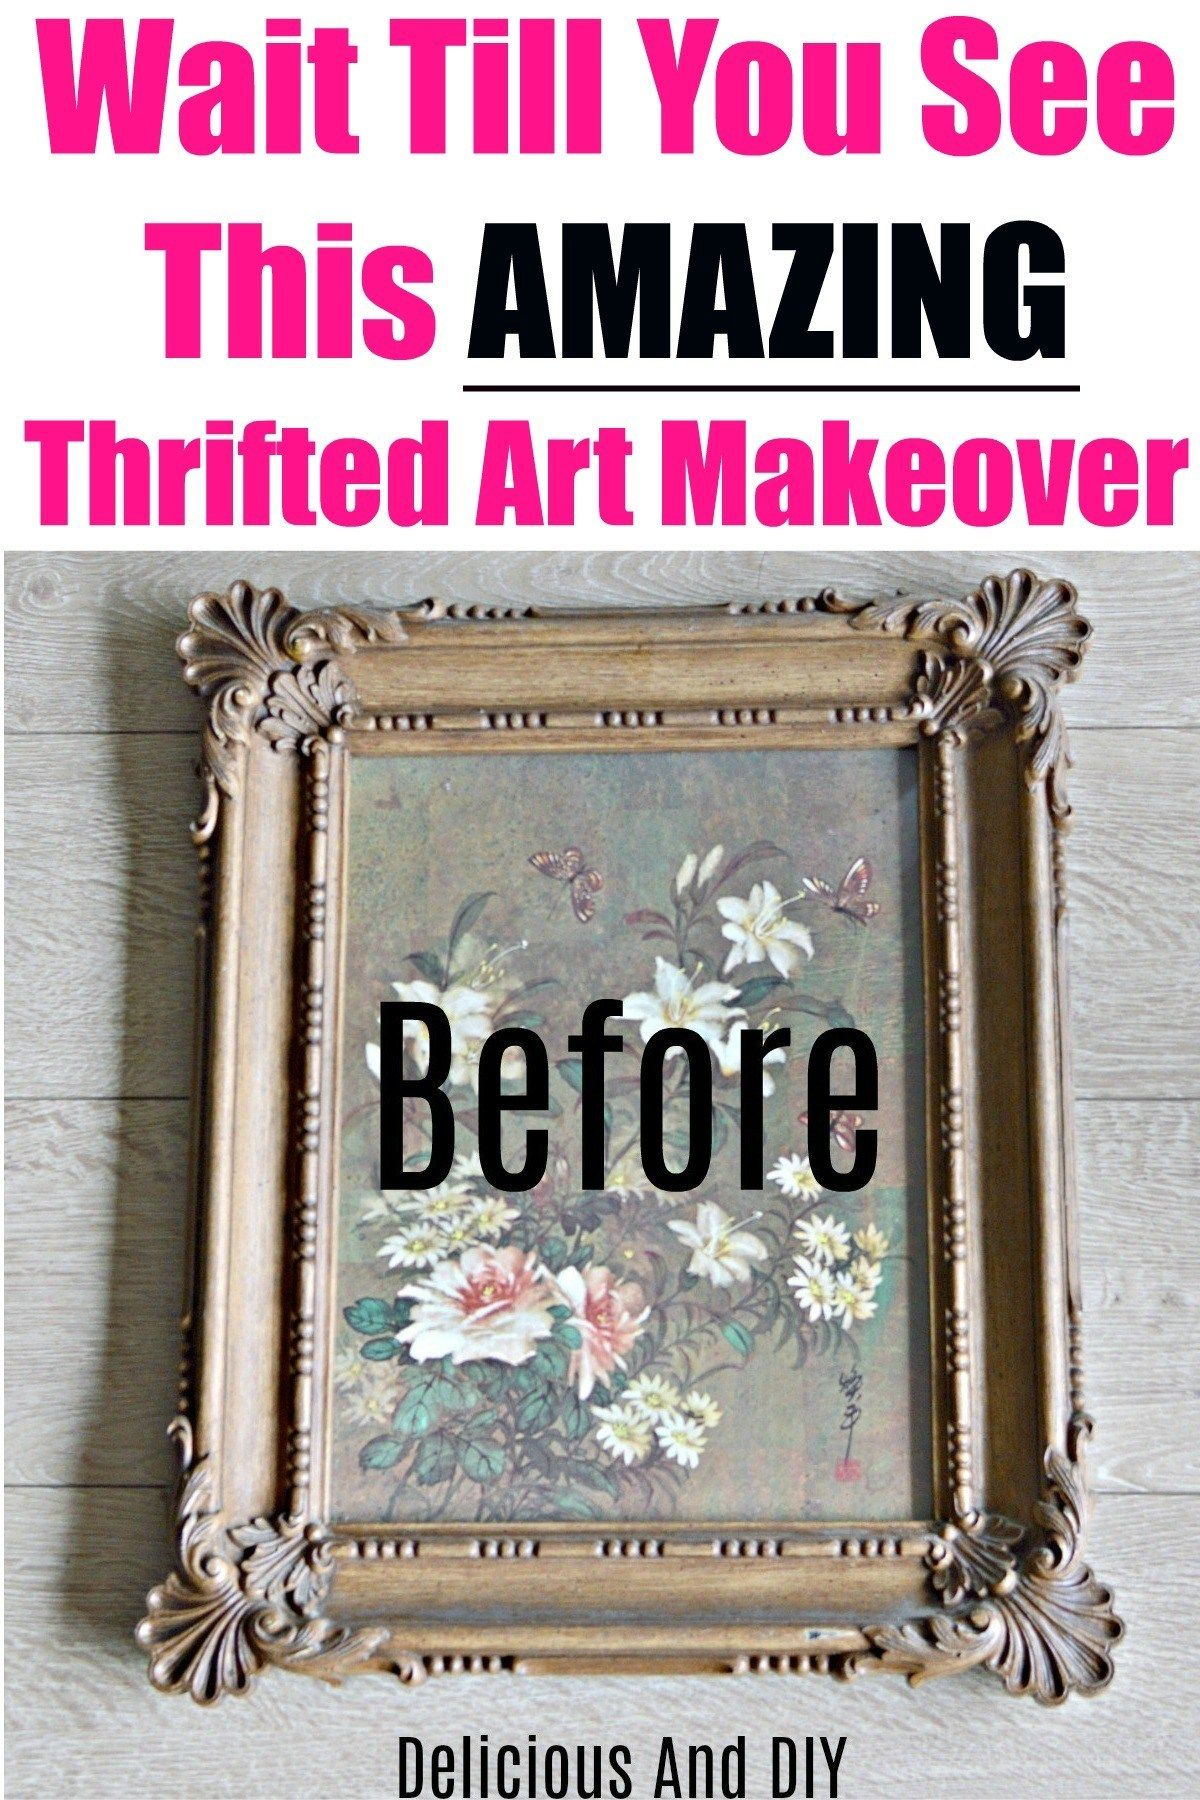 Learn how you can update a boring thrift store wall art just by repainting over it with bright vibrant paint colors| Update Thrift Store Art with this easy to do DIY project| Turn boring piece of thrift store wall art into vibrant pieces of Art #thriftedart #thriftstoreart #homedecor #wallartdecor #diywallart #paintedart